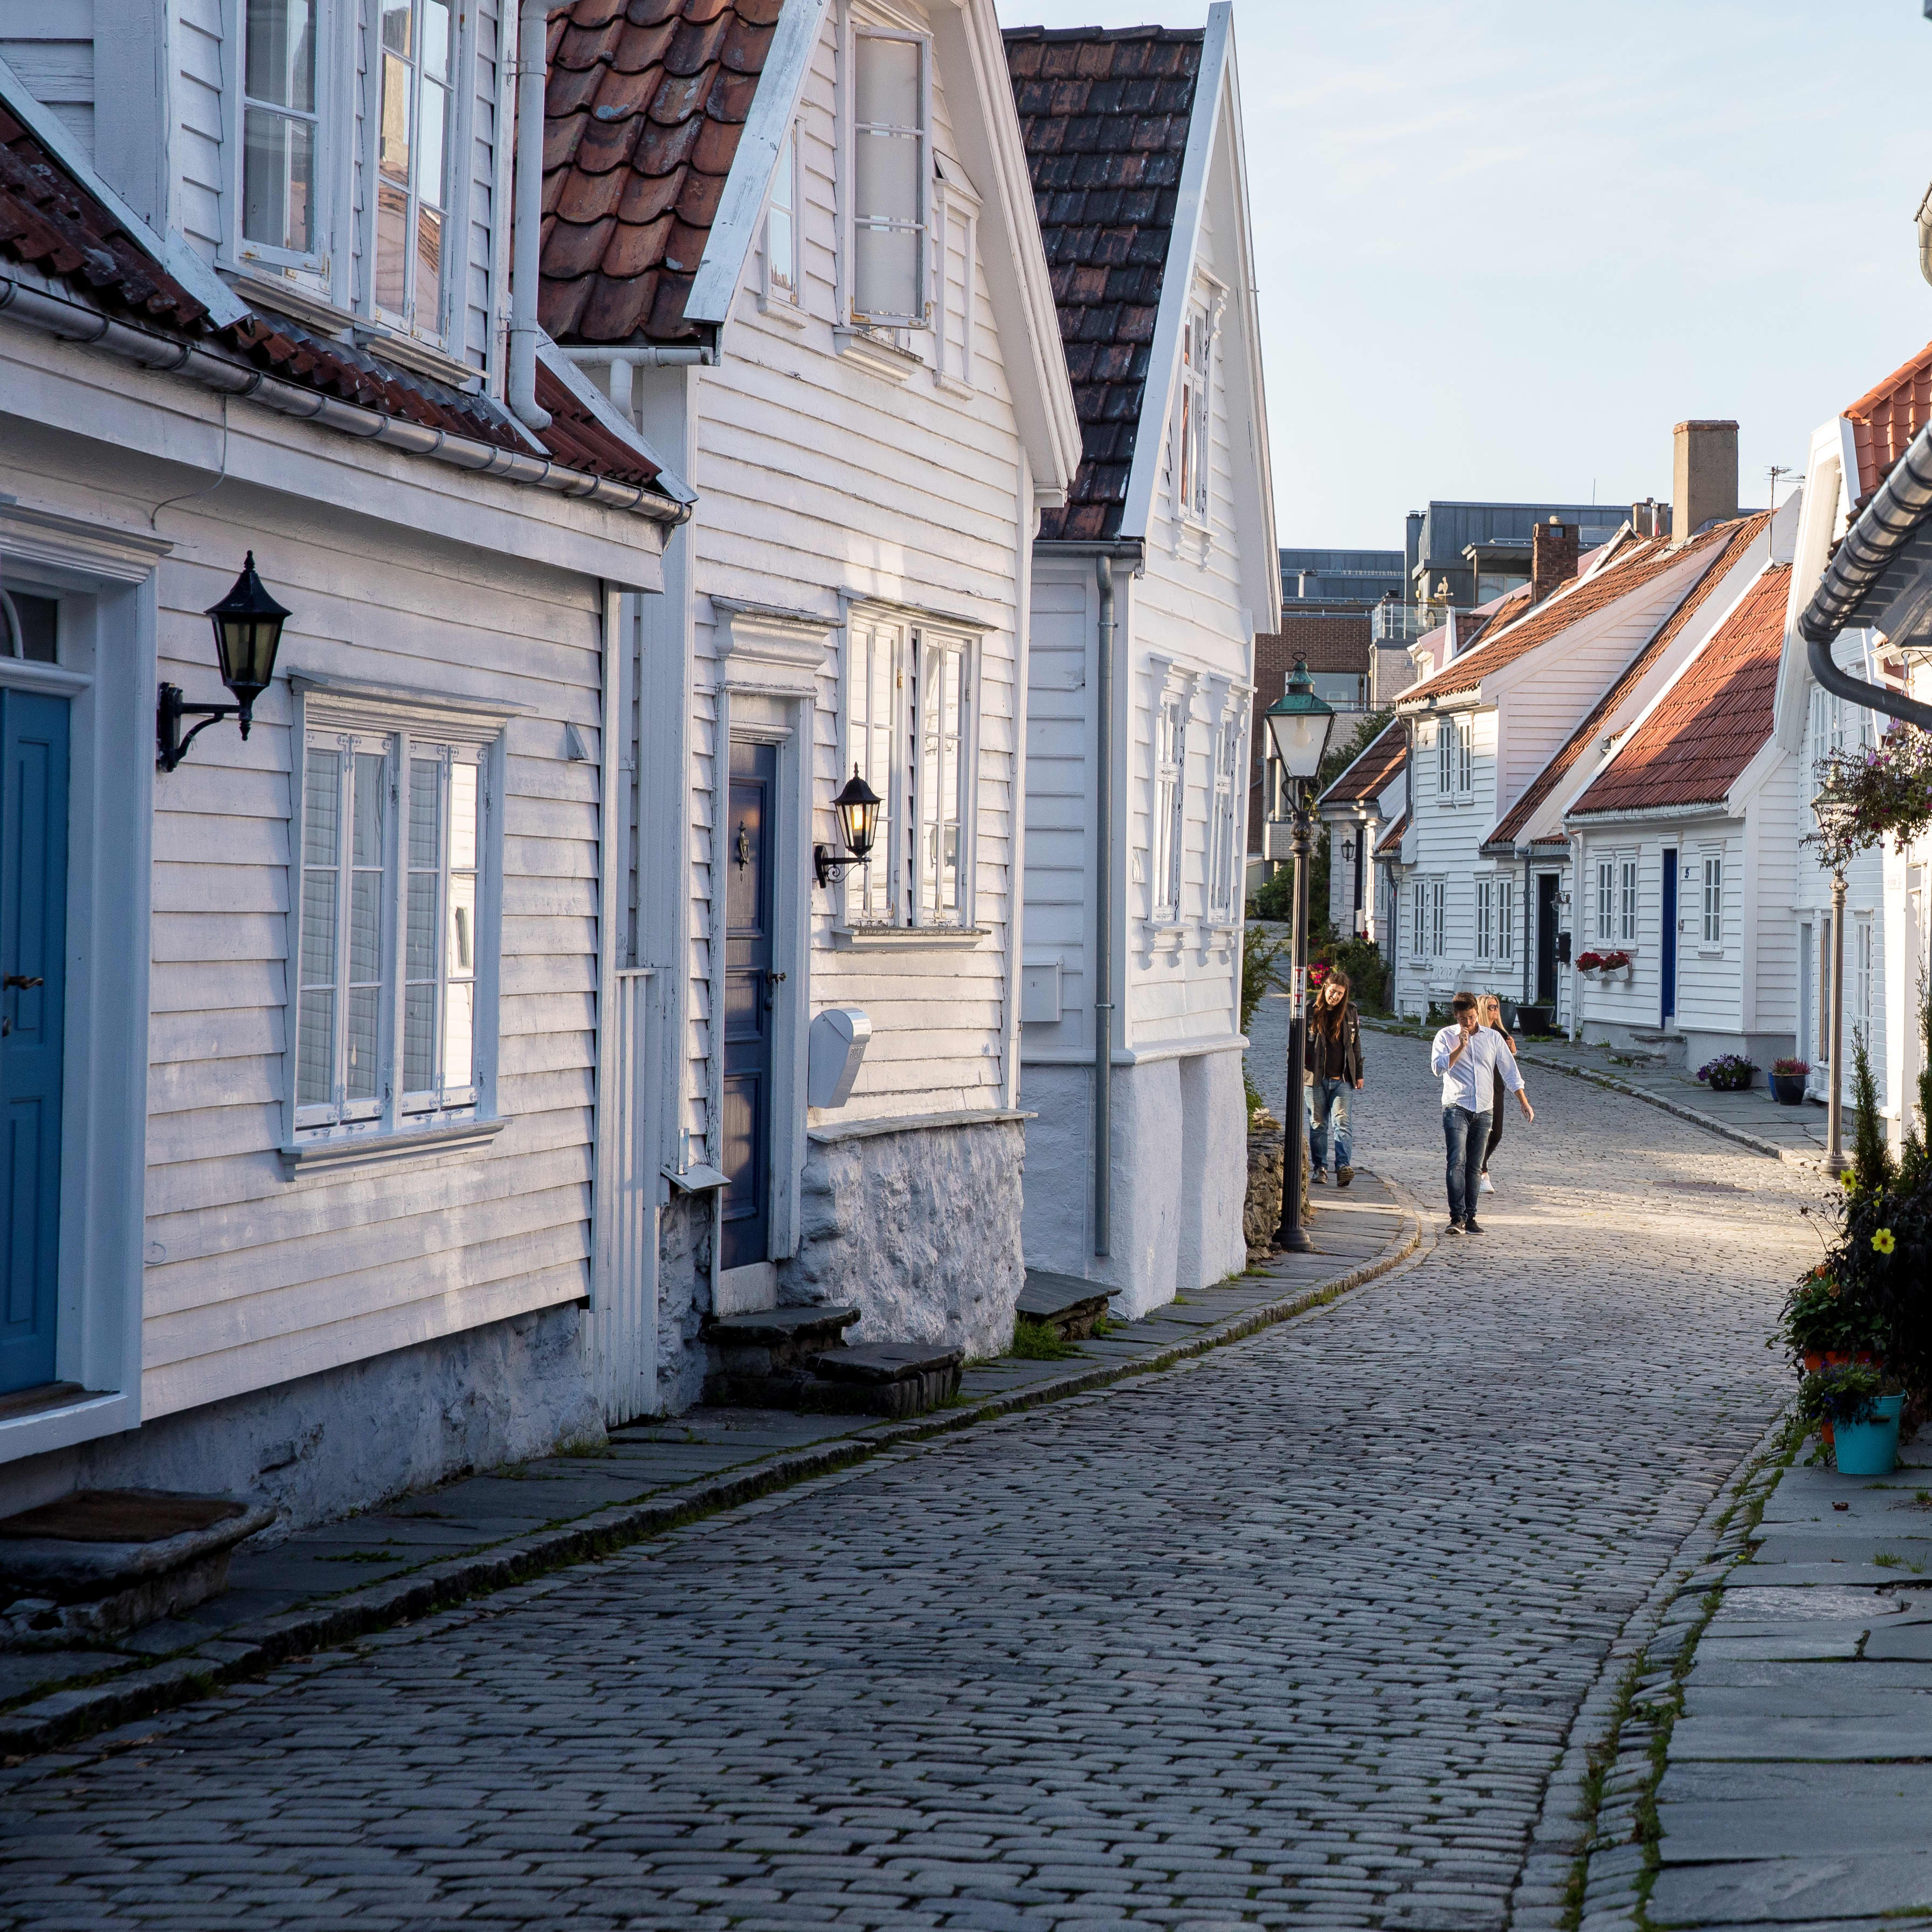 Cobble stone streets lined with white wooden houses with red roofs in Old Stavanger.